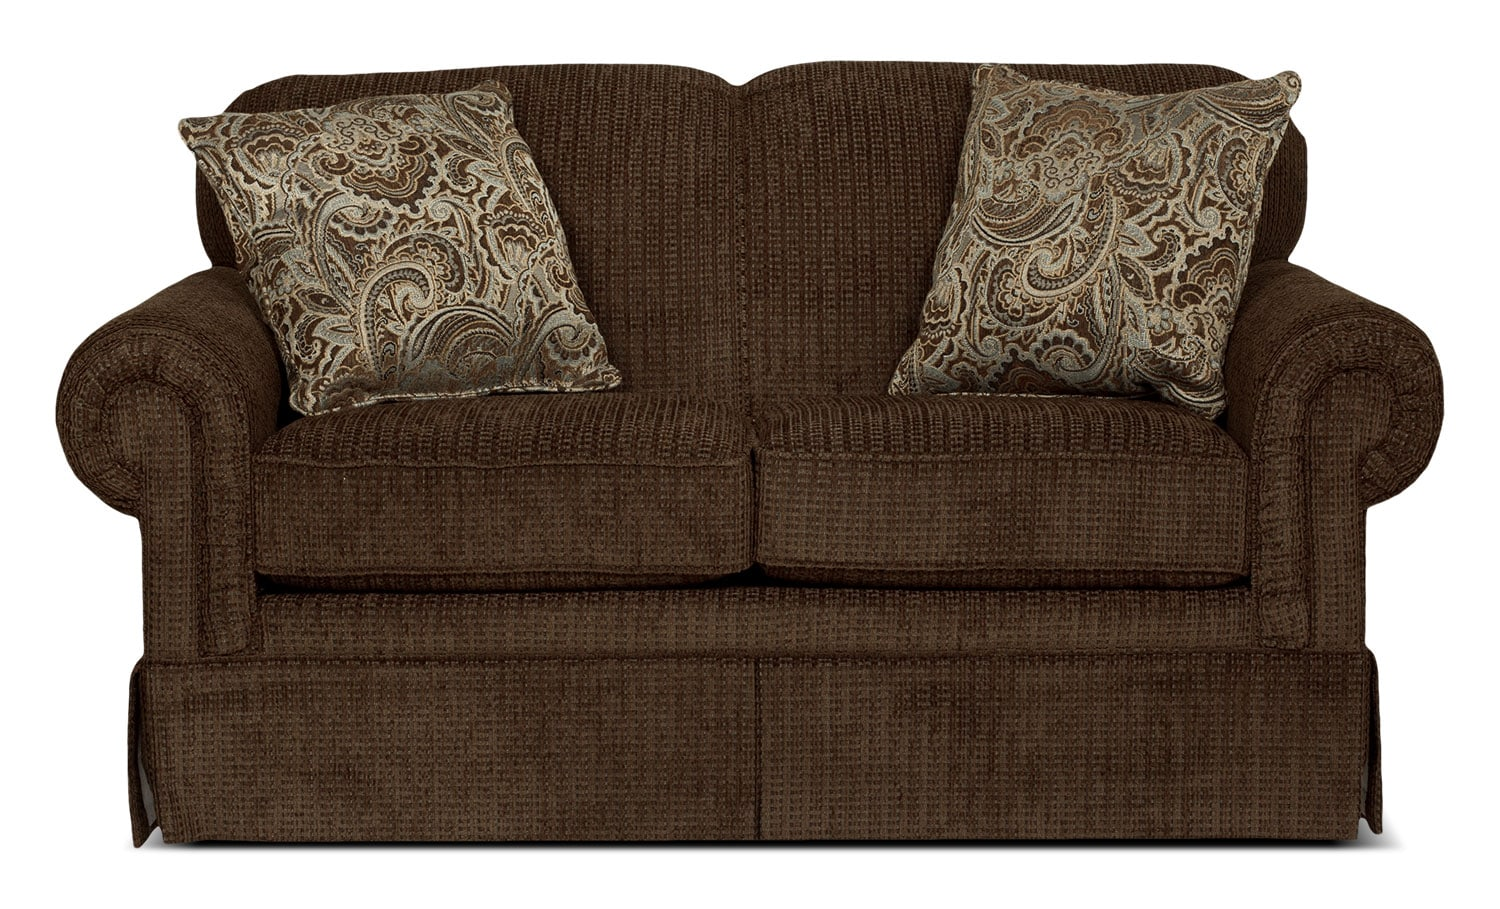 Beacon Loveseat - Cocoa